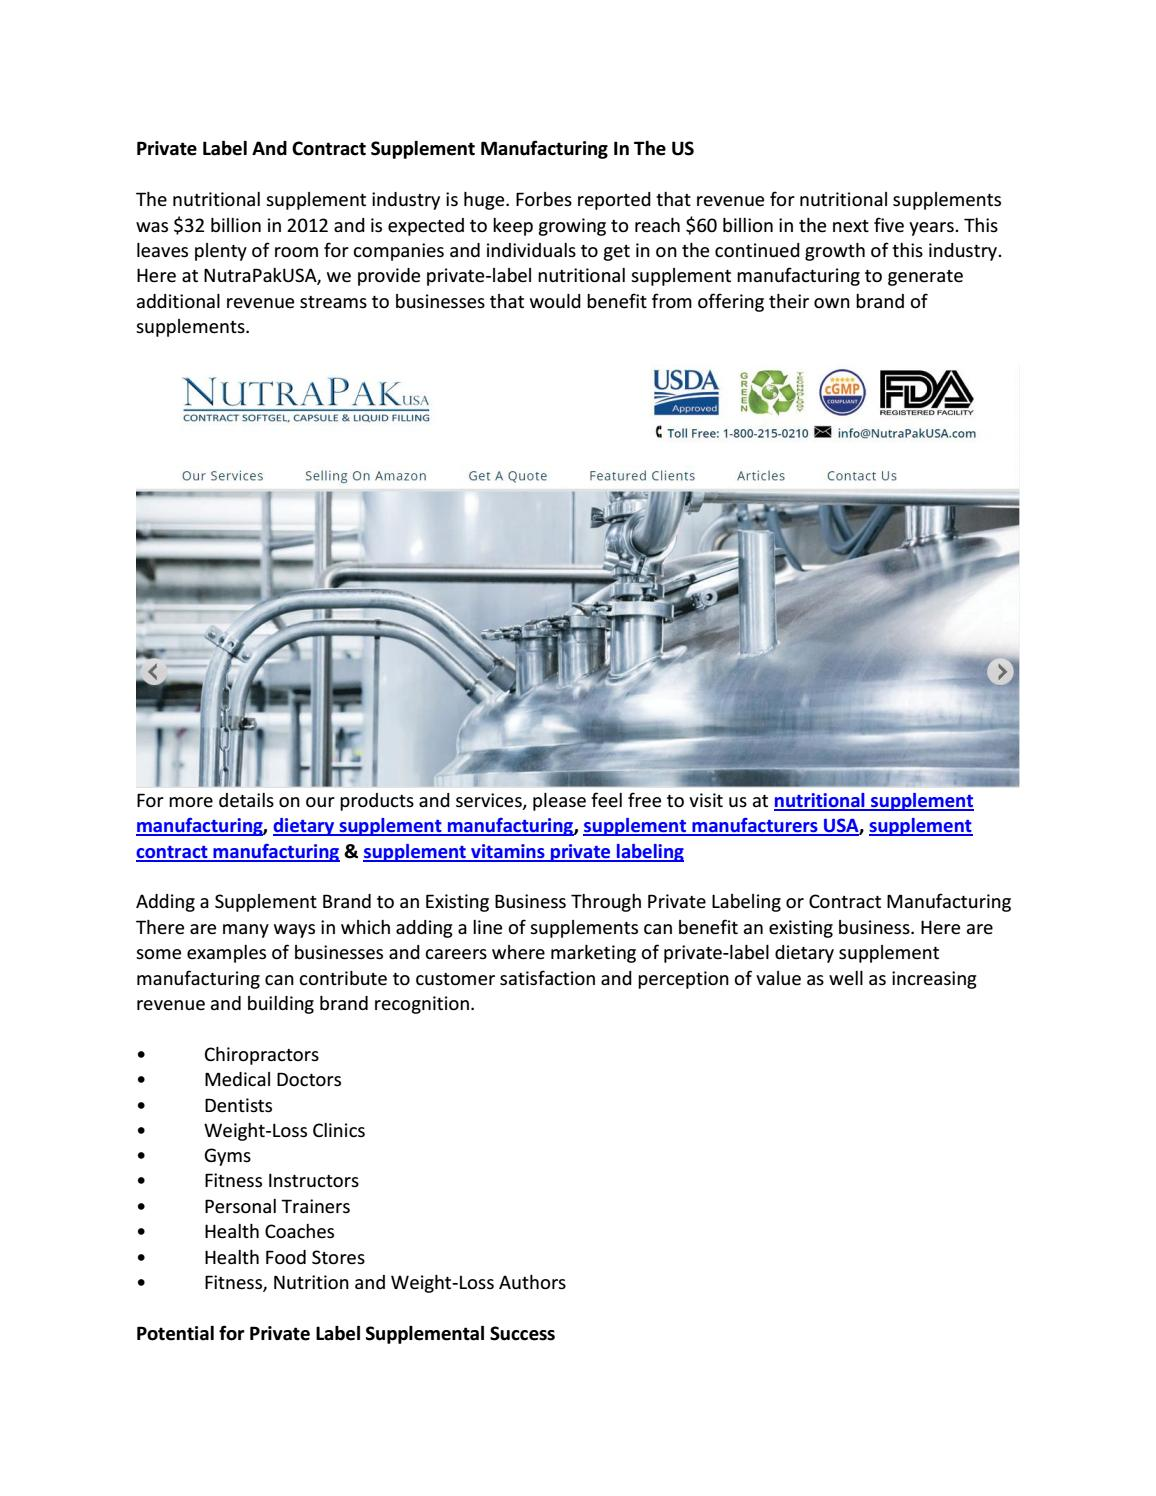 Private label and contract supplement manufacturing in the us by